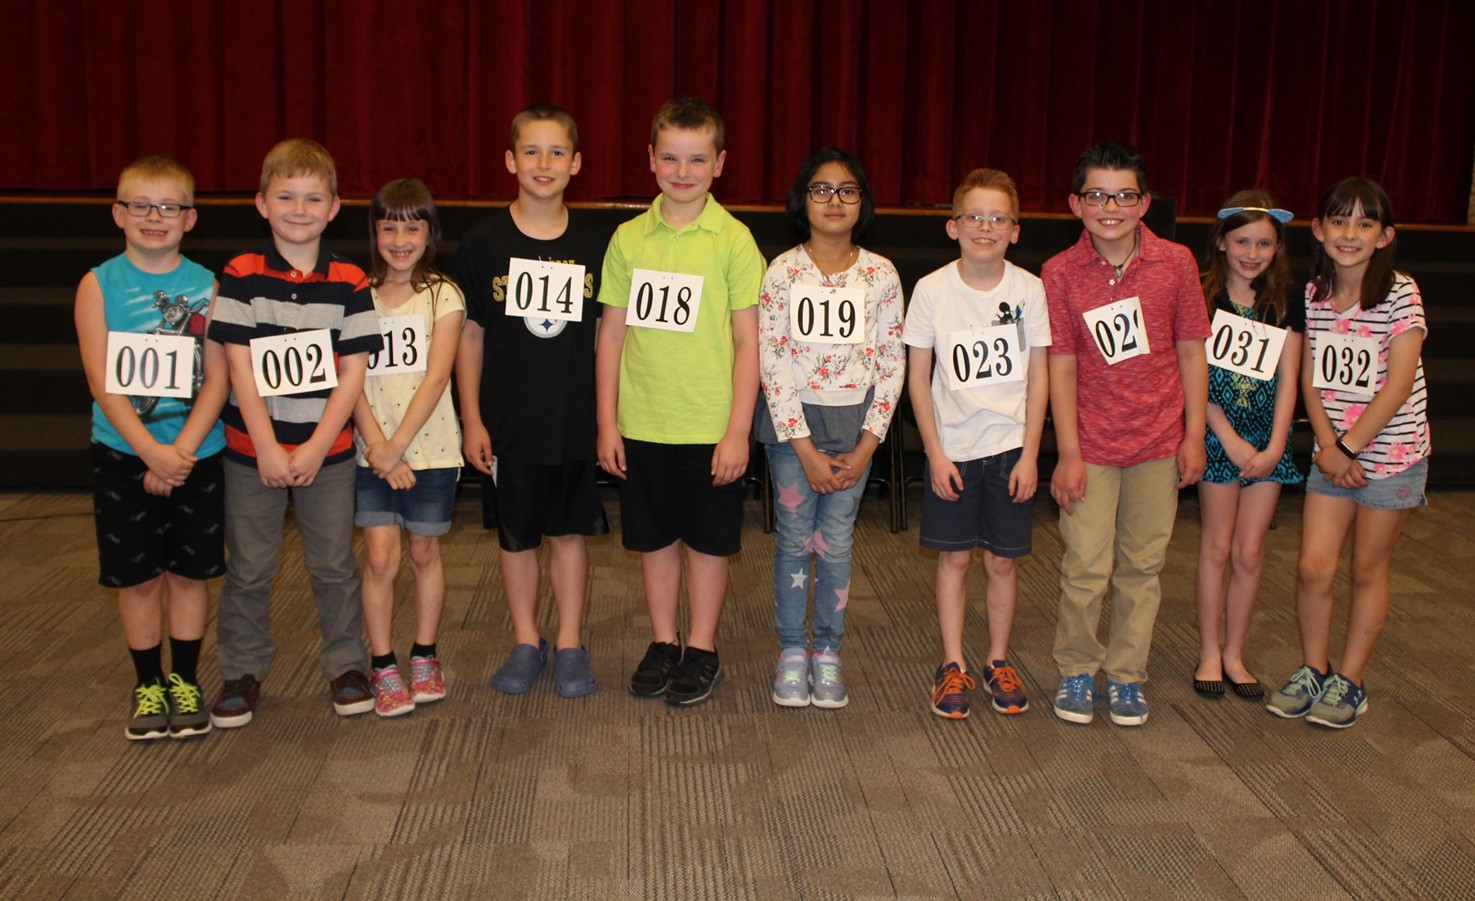 The Top 10 Spellers At The BPSD Third Grade Spelling Bee